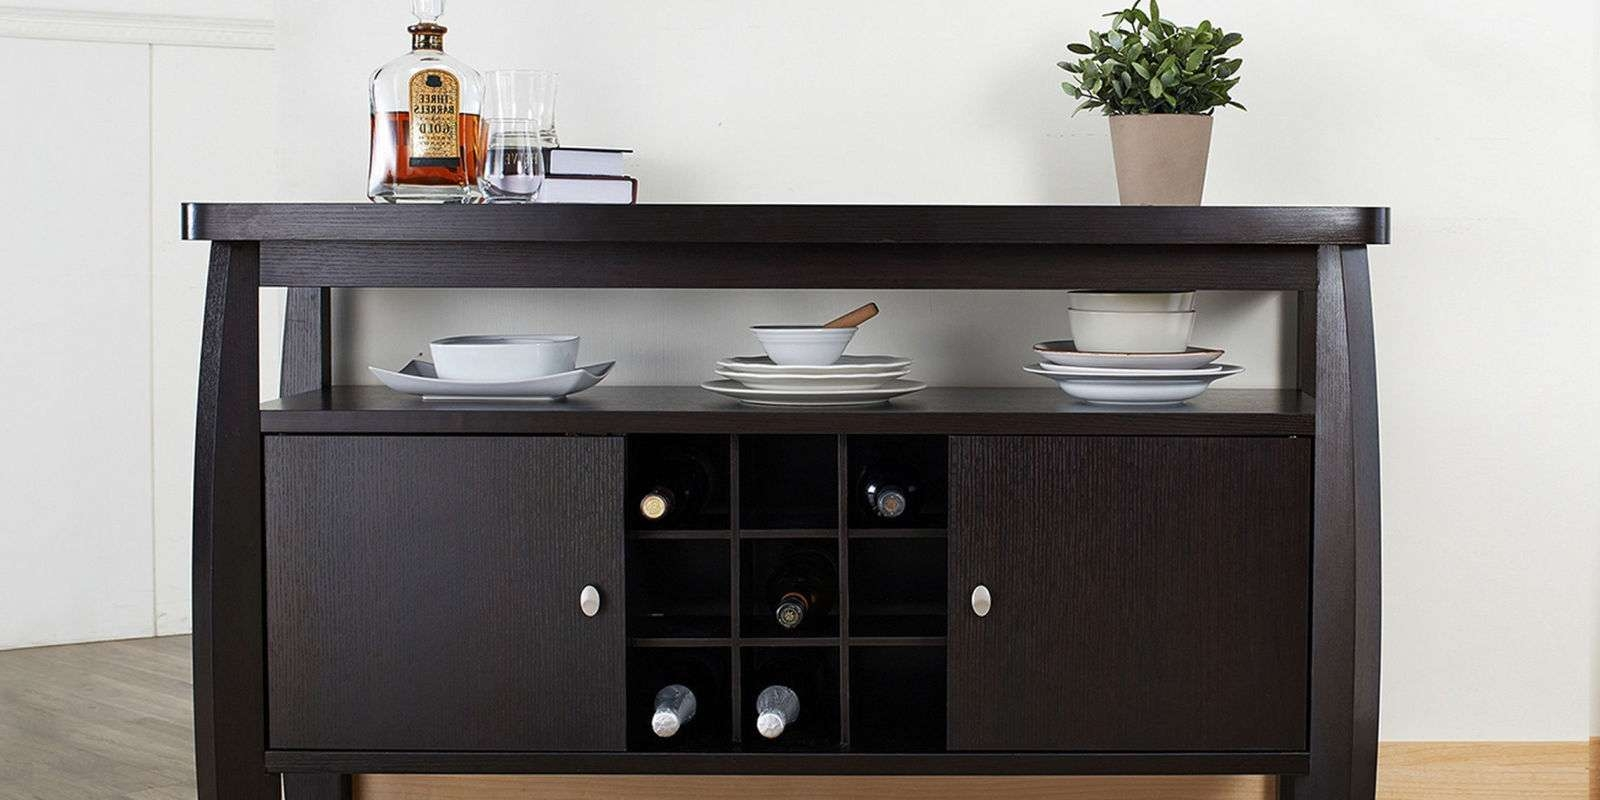 11 Best Sideboards And Buffets In 2018 – Reviews Of Sideboards Within Dining Buffets And Sideboards (View 9 of 20)